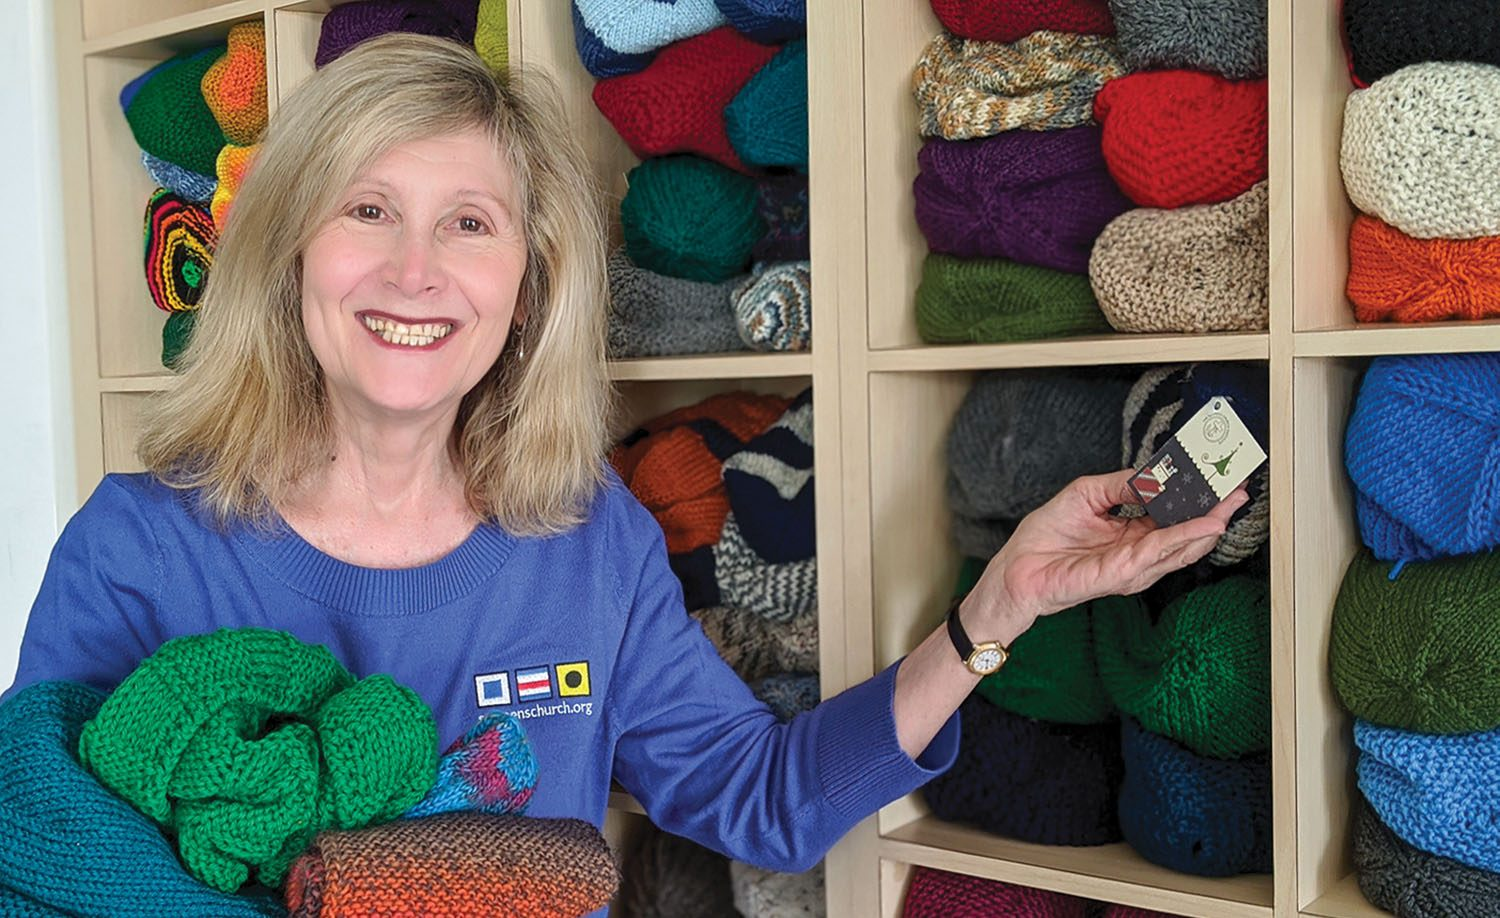 Joanne Bartosik, manager of Seamen's Church Institute's Christmas at Sea/Christmas on the River program, shows off some of the many knitted items SCI collects to give out as Christmas gifts to mariners. (Photo courtesy of Seamen's Church Institute)